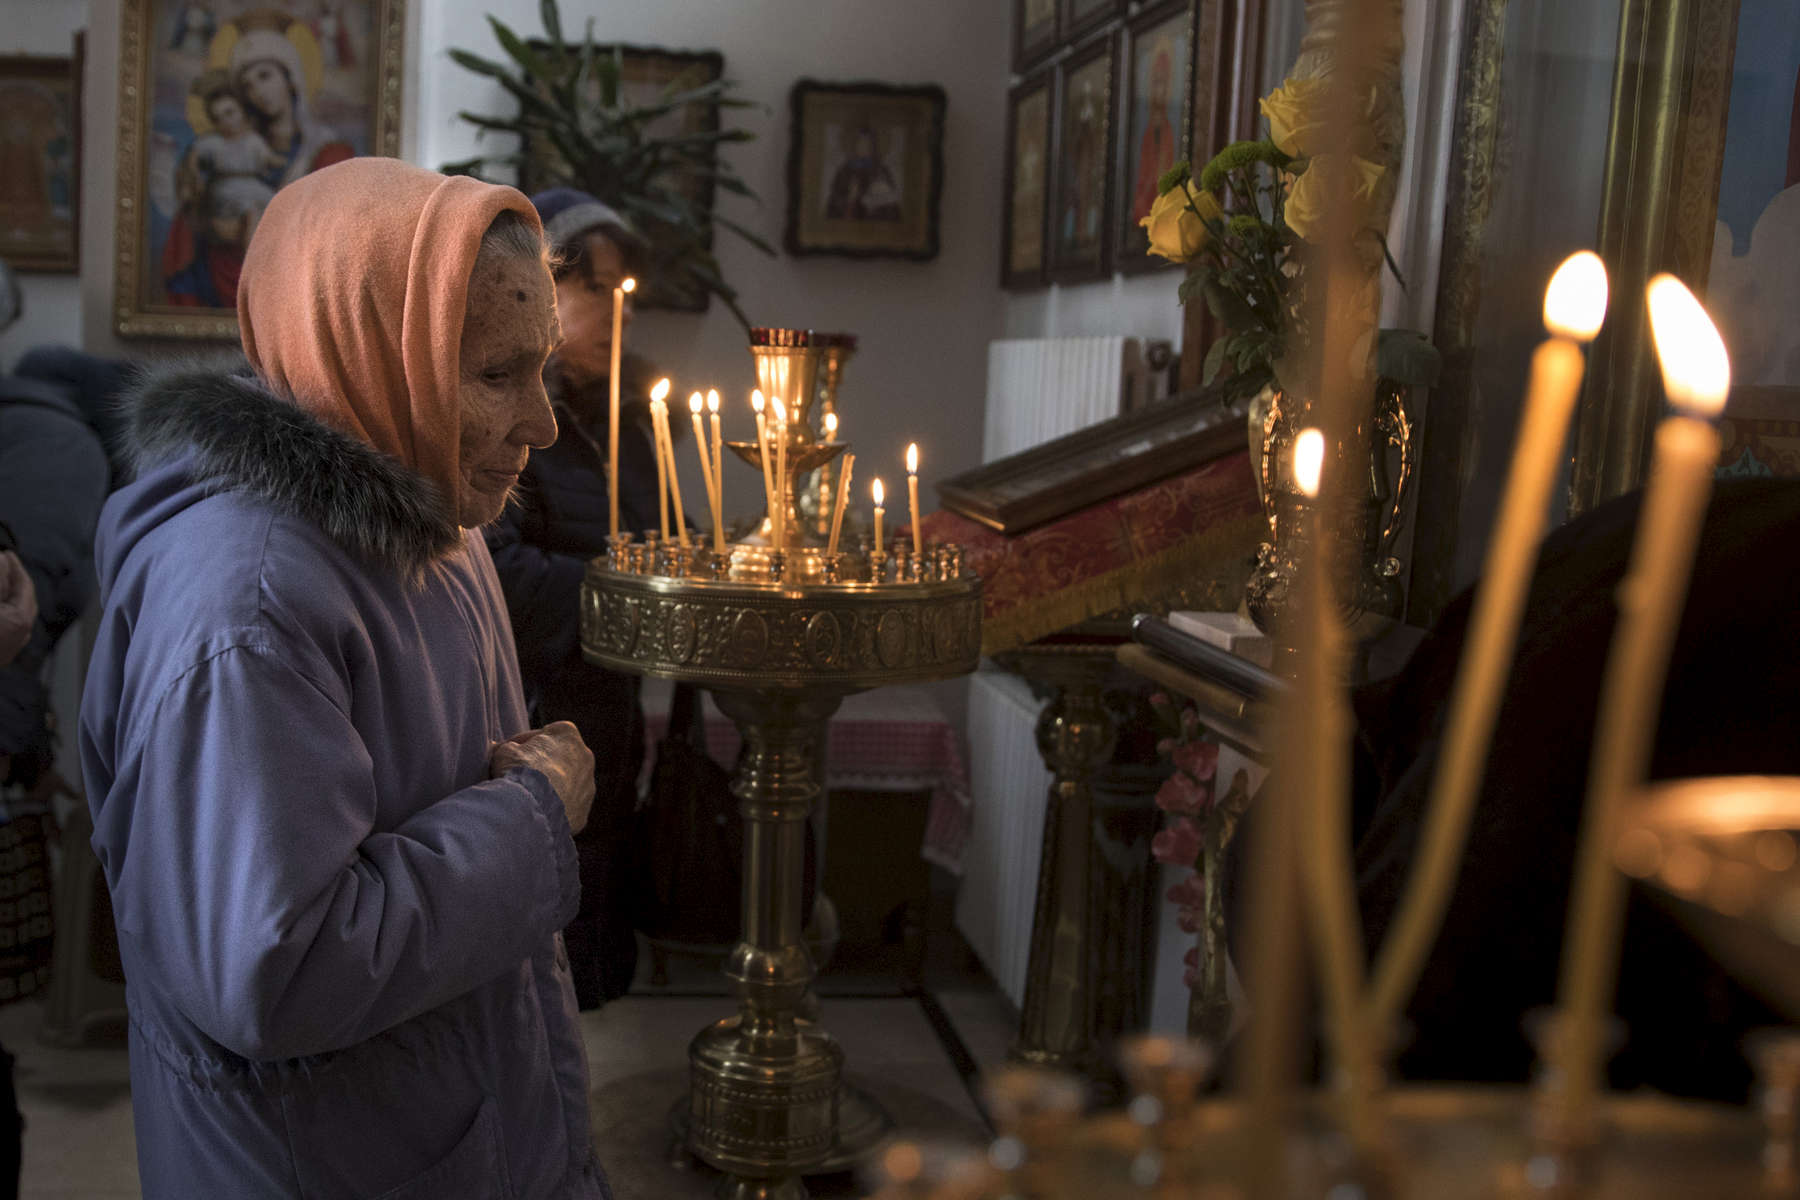 A woman lights candles during a Sunday service at a church in Donetsk.After more than four years of war the armed conflict in eastern Ukraine has a human toll that is staggering. The war has displaced more than 1.6 million with over 2,500 civilians killed and 9,000 injured. Some 200,000 people live under constant fear of shelling every day, with nearly a third of the 3.4 million people in need of humanitarian assistance over 60 years of age. Ukraine has the highest proportion of elderly affected by war in the world.